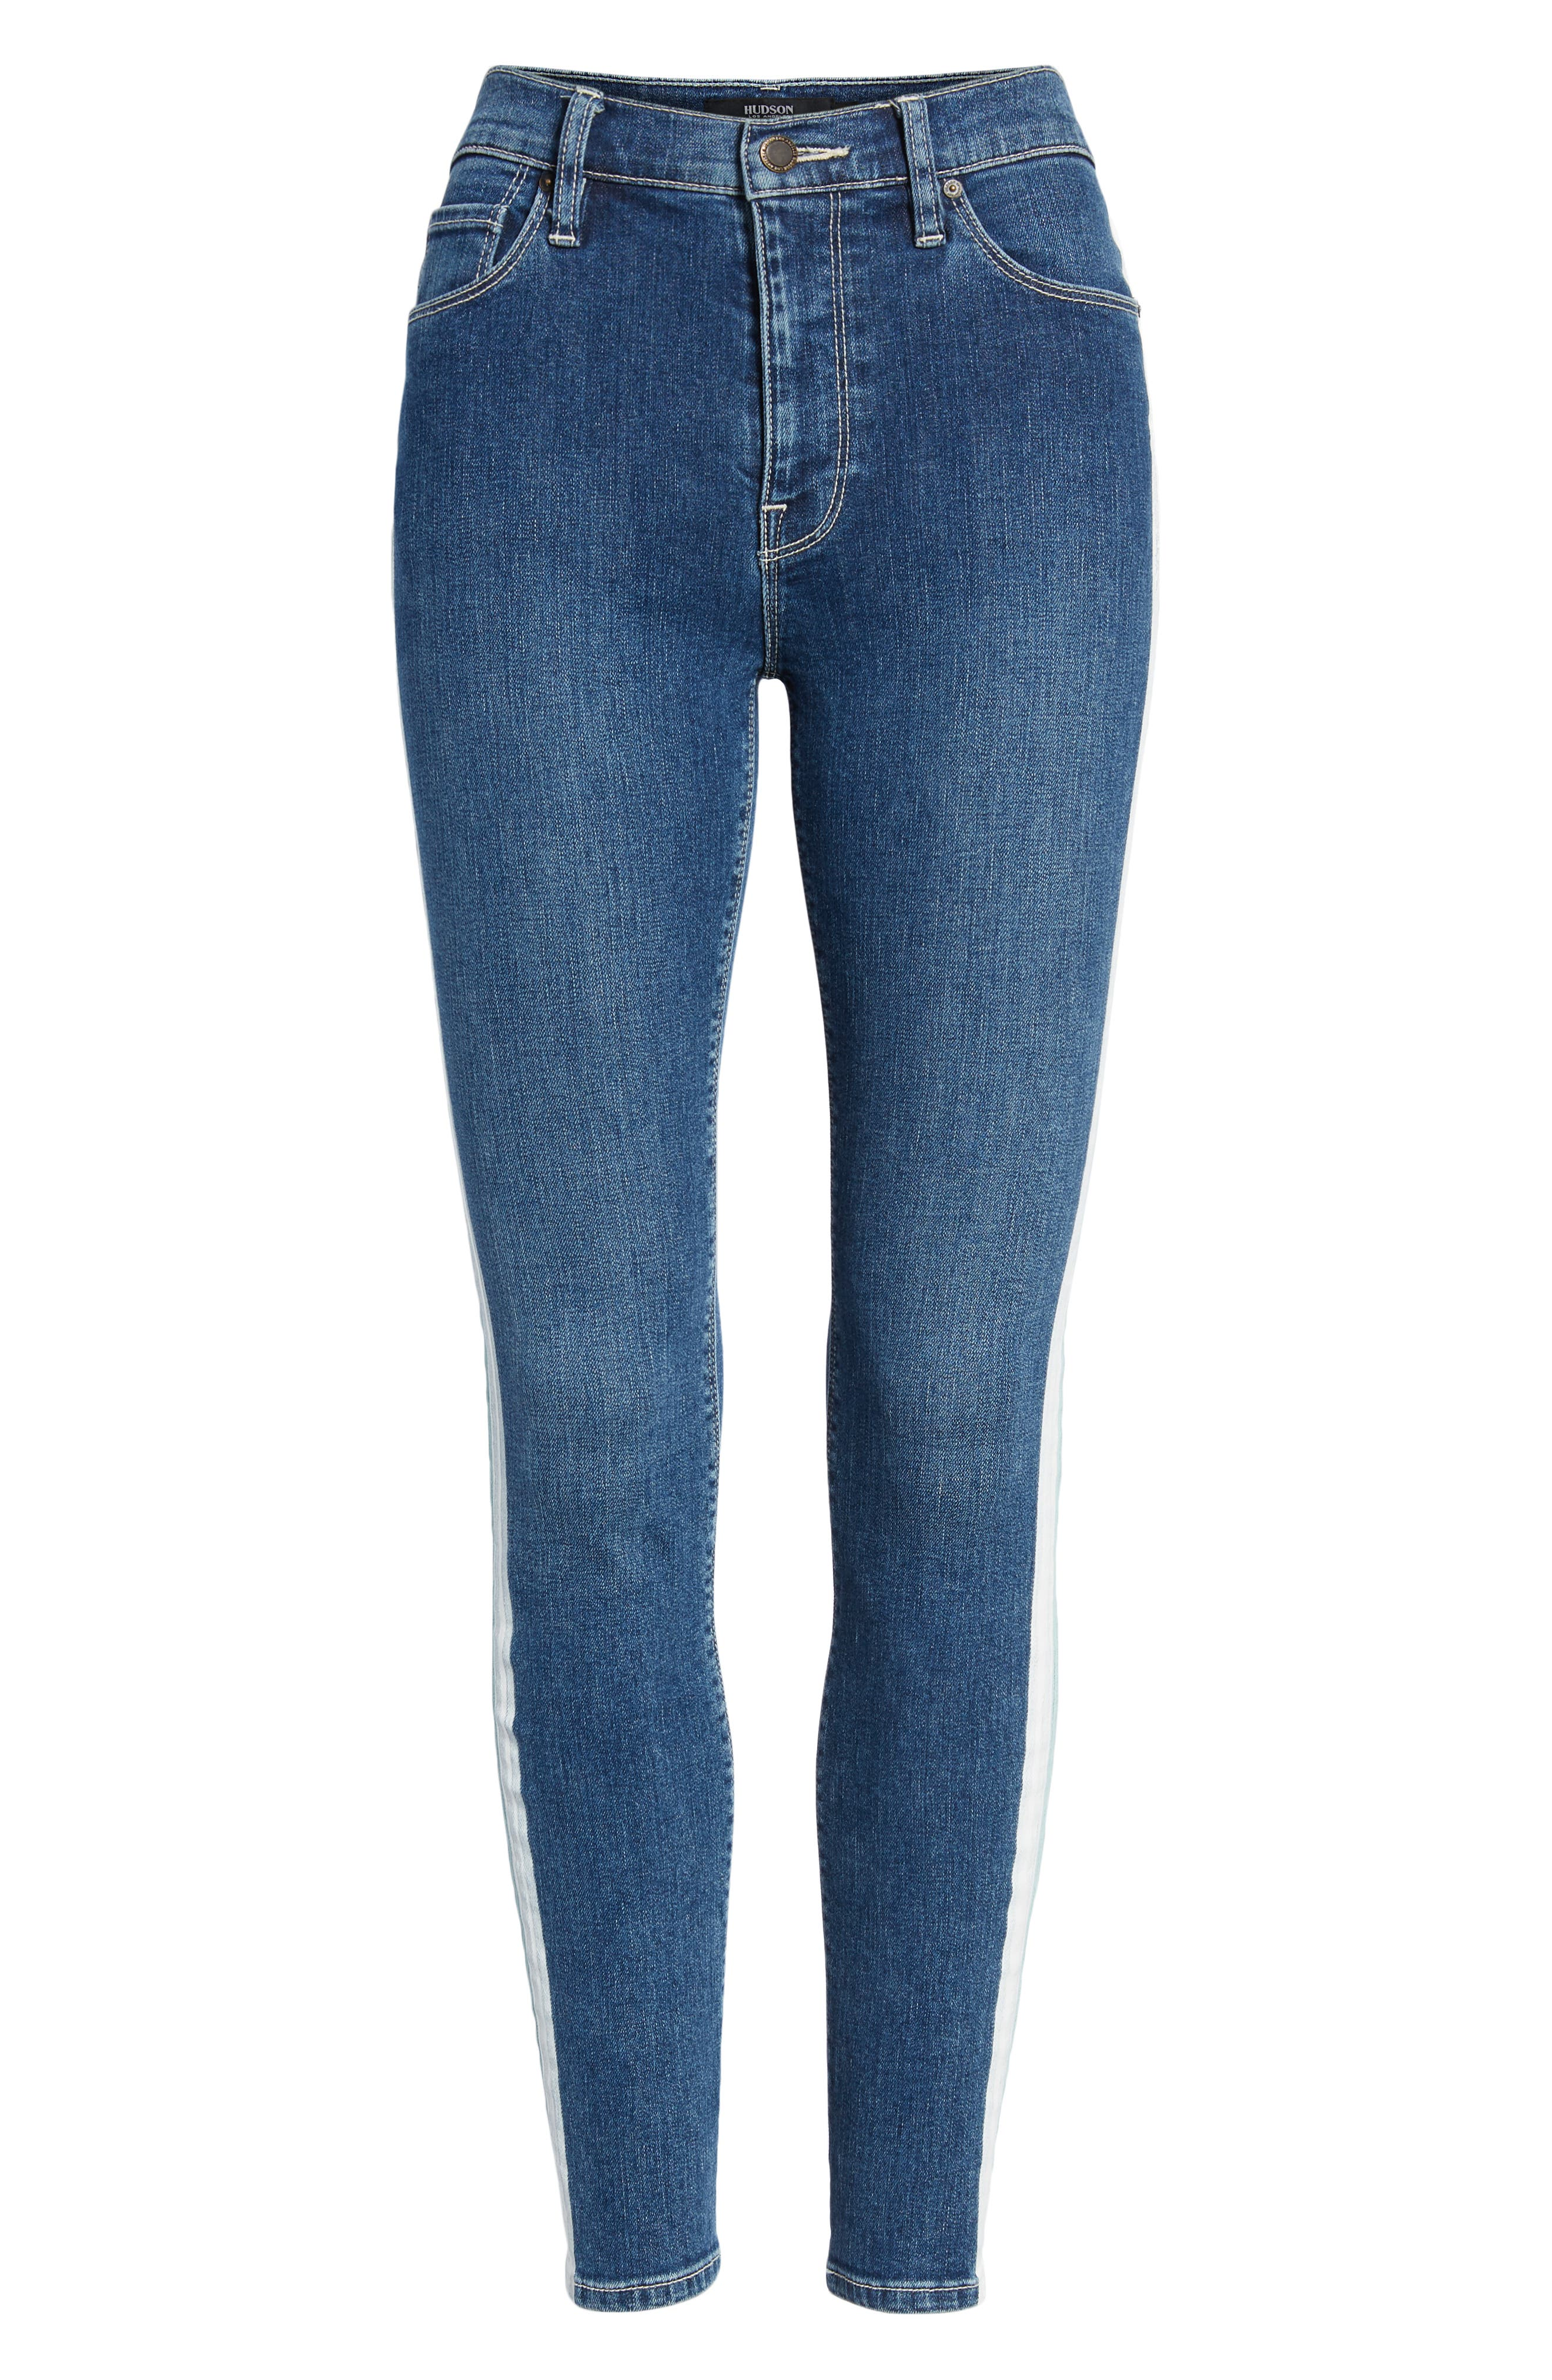 Barbara High Waist Ankle Skinny Jeans,                             Alternate thumbnail 7, color,                             403